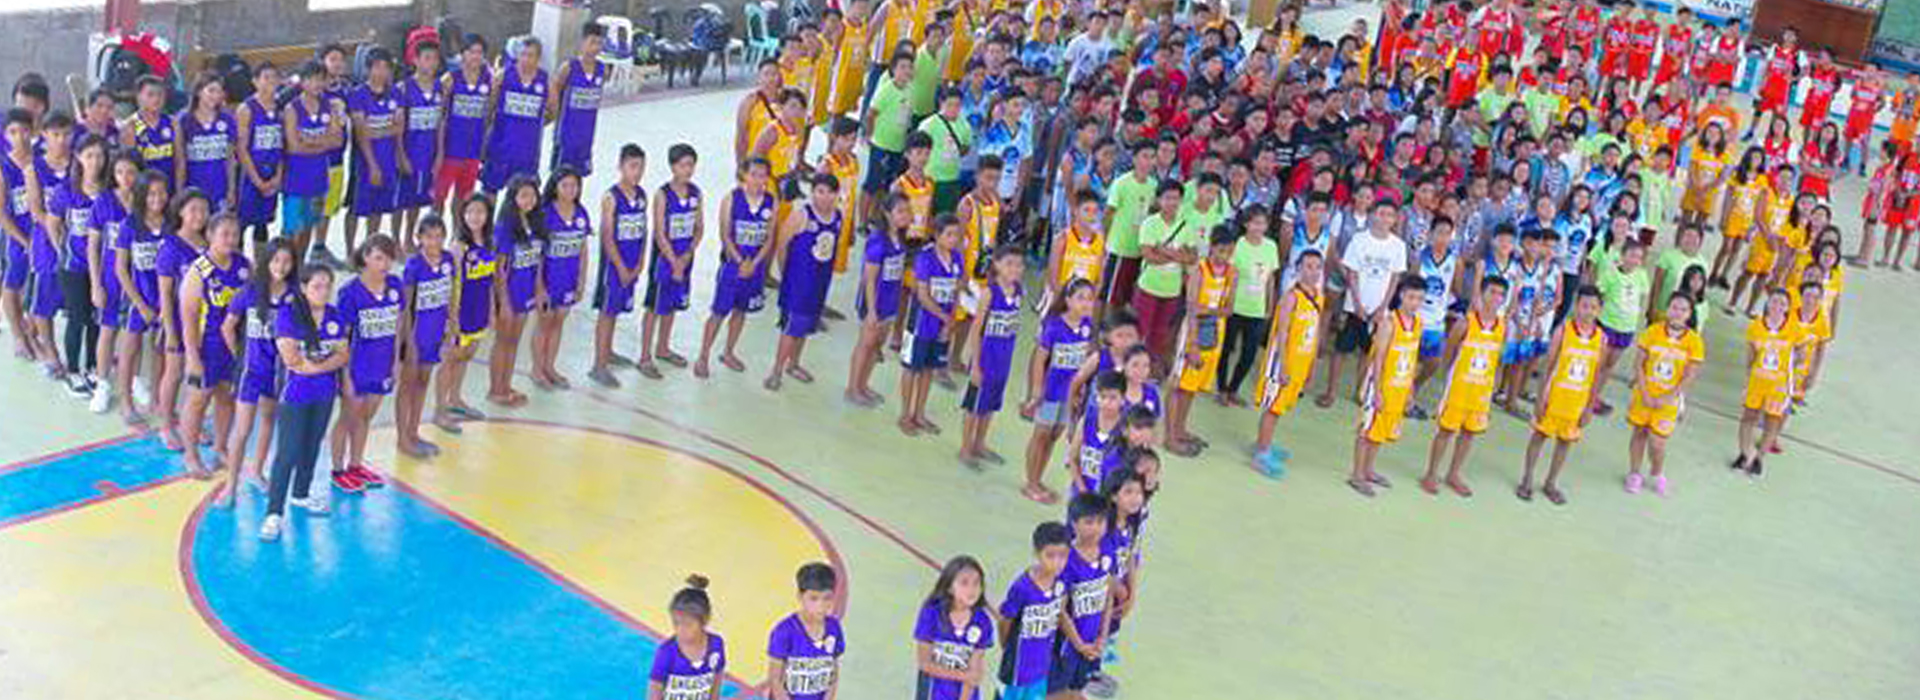 St. James Lutheran Church Champions 18th NLLD Sports Fest